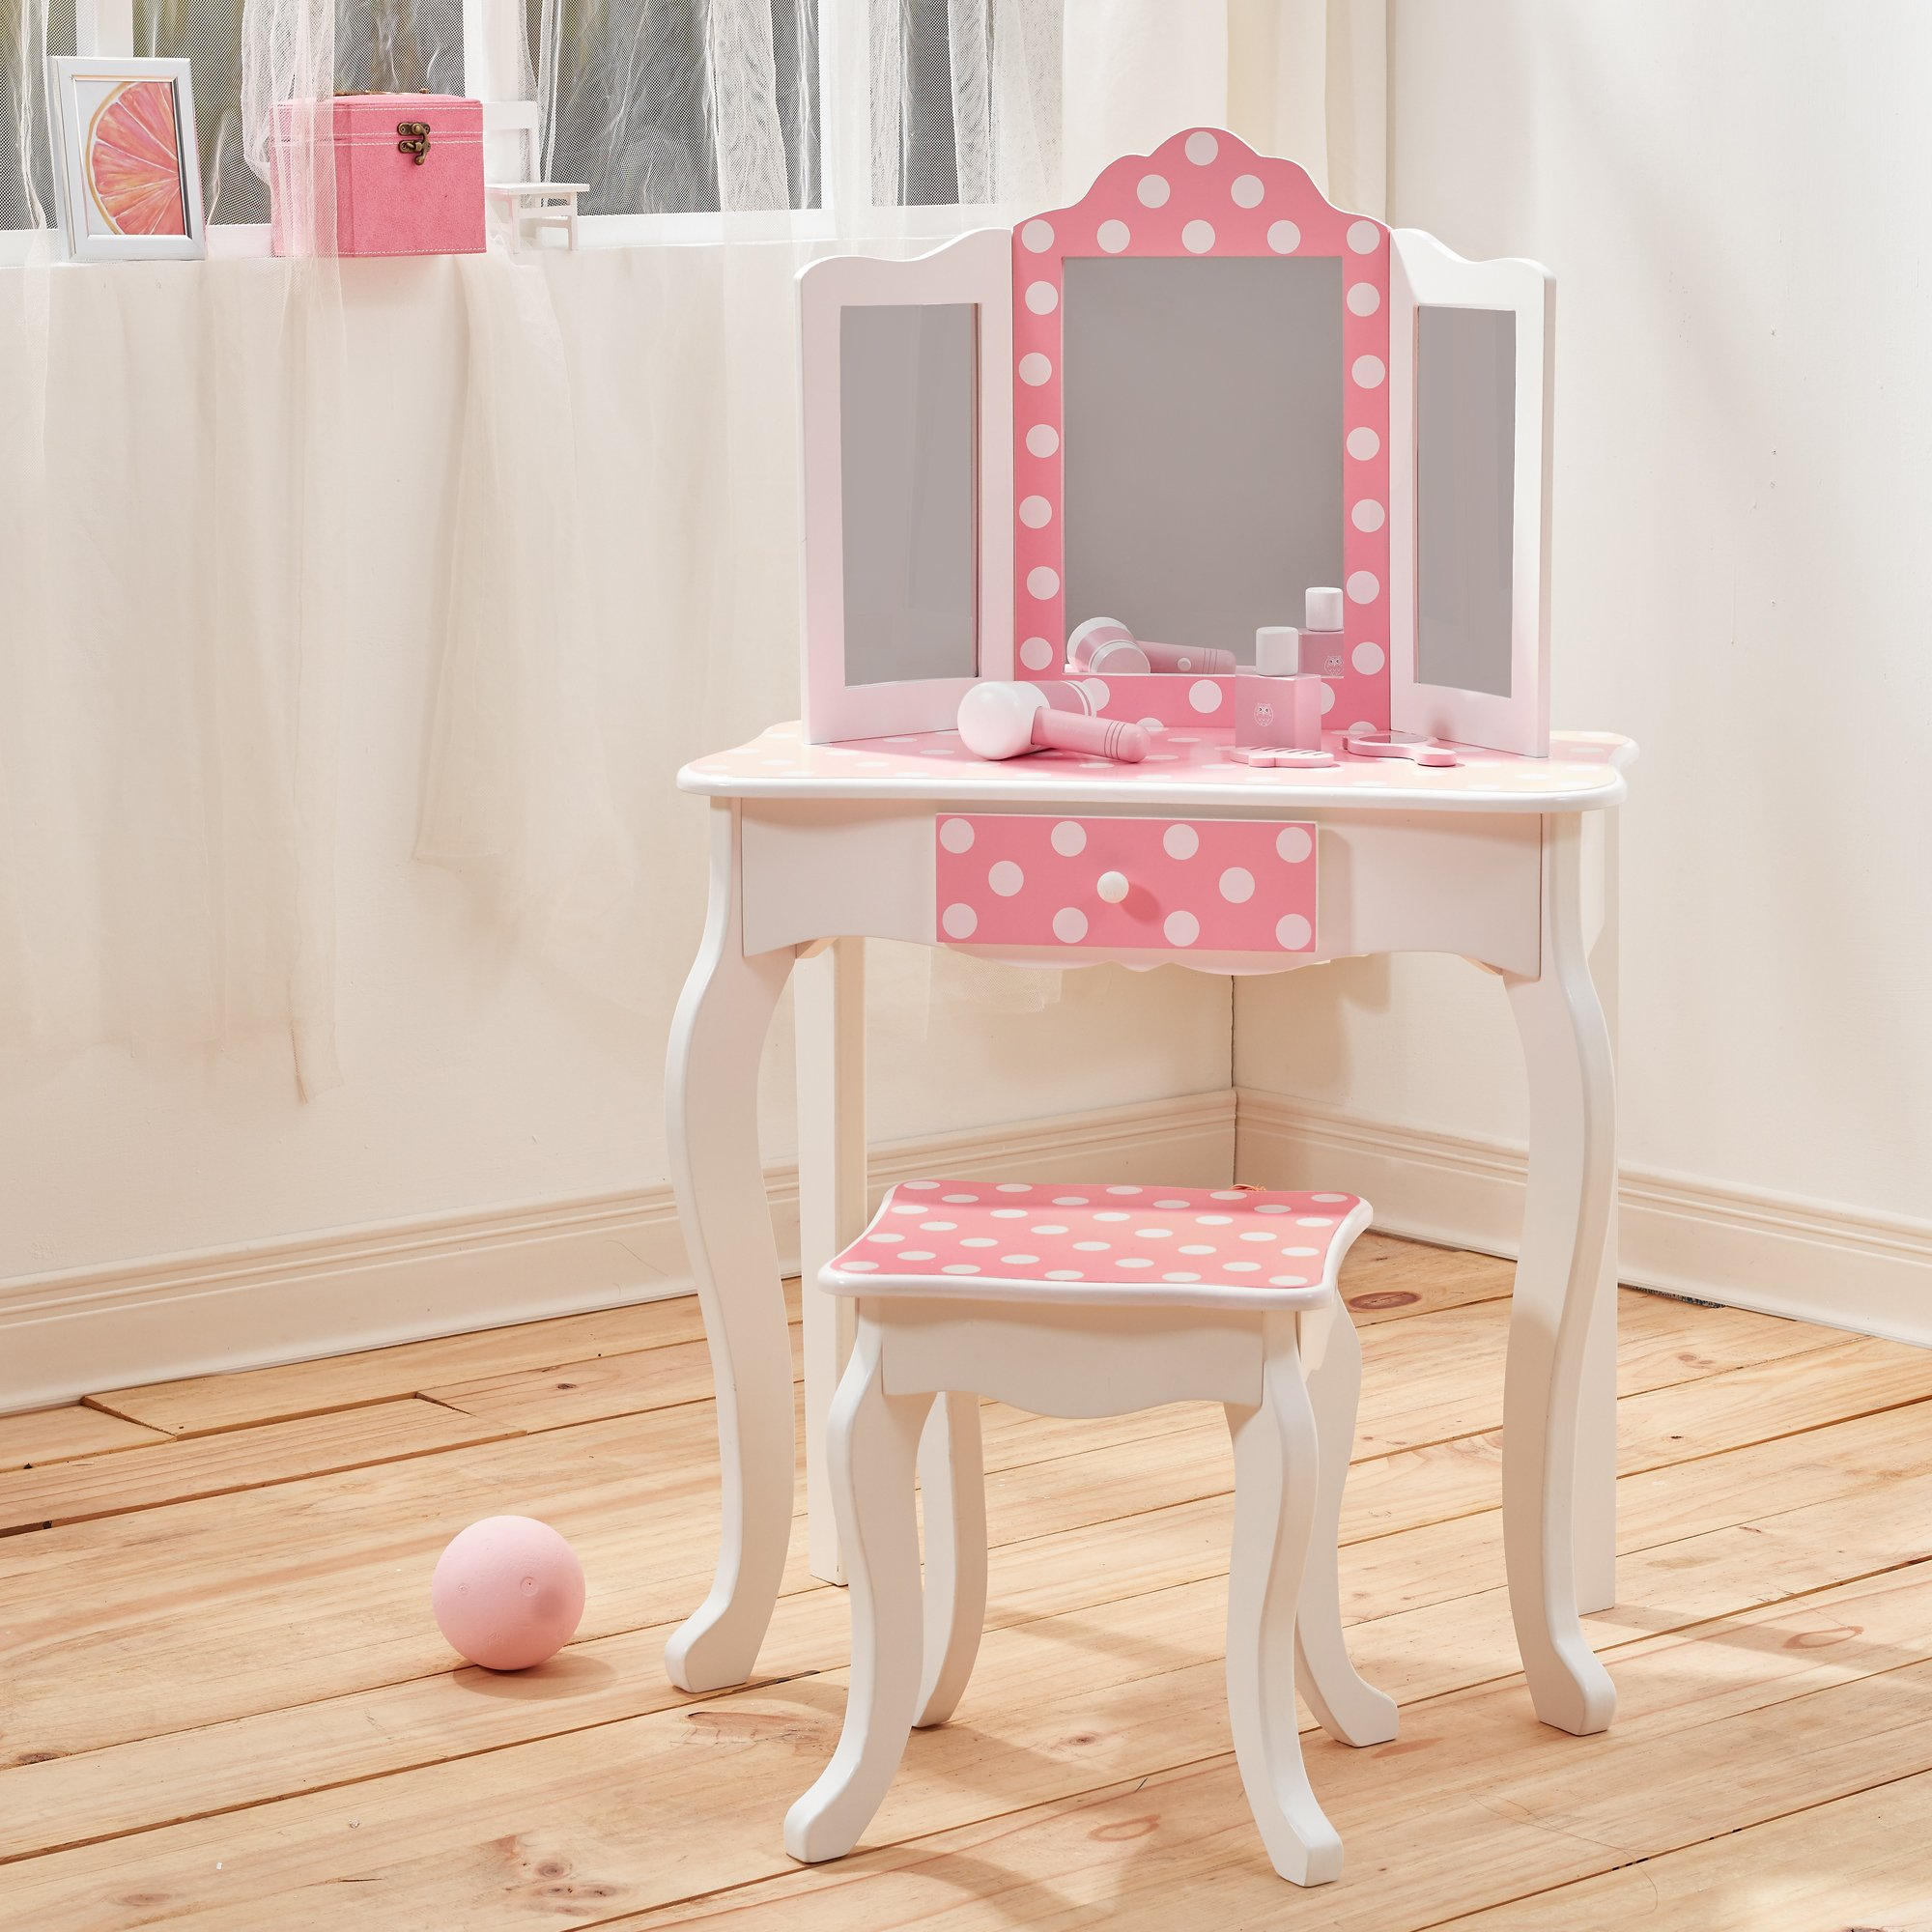 Teamson Kids TD-11670F Fashion Prints Wooden Vanity Table and Stool Set, Pink/Polka Dot, Pink/White, One Size by Teamson Kids